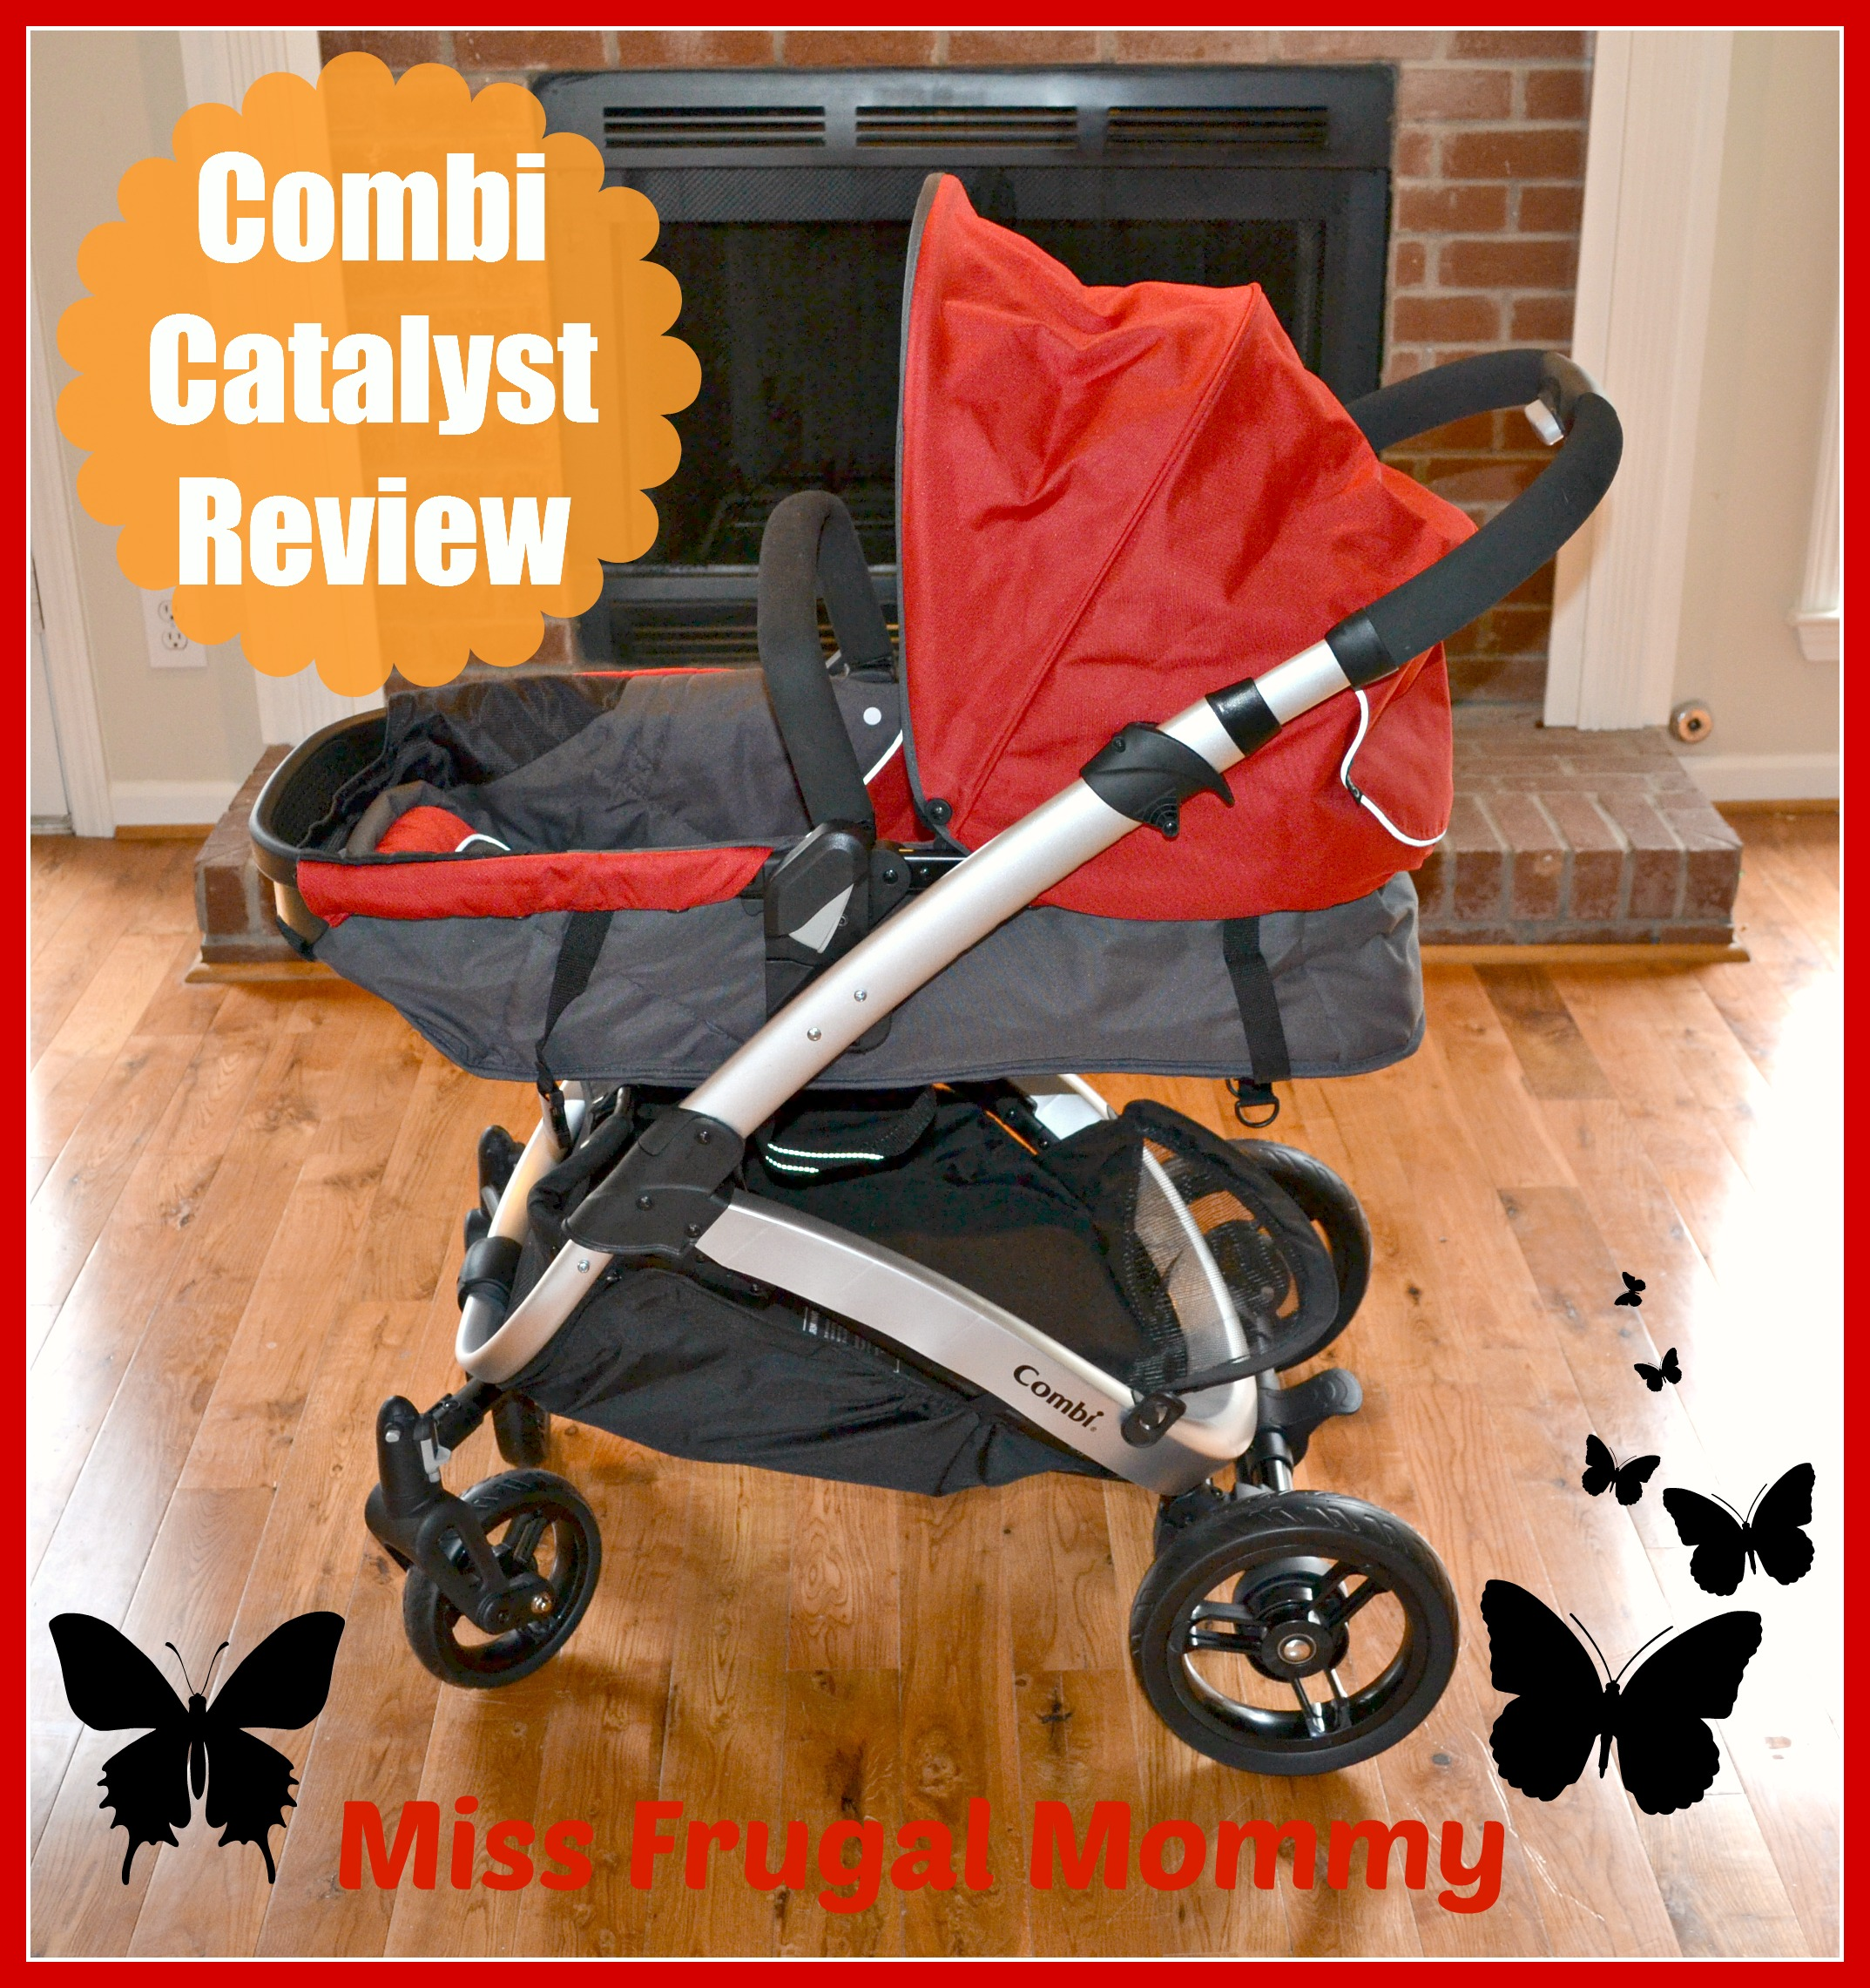 Combi Stroller Models Combi Catalyst Stroller Review Getting Ready For Baby Gift